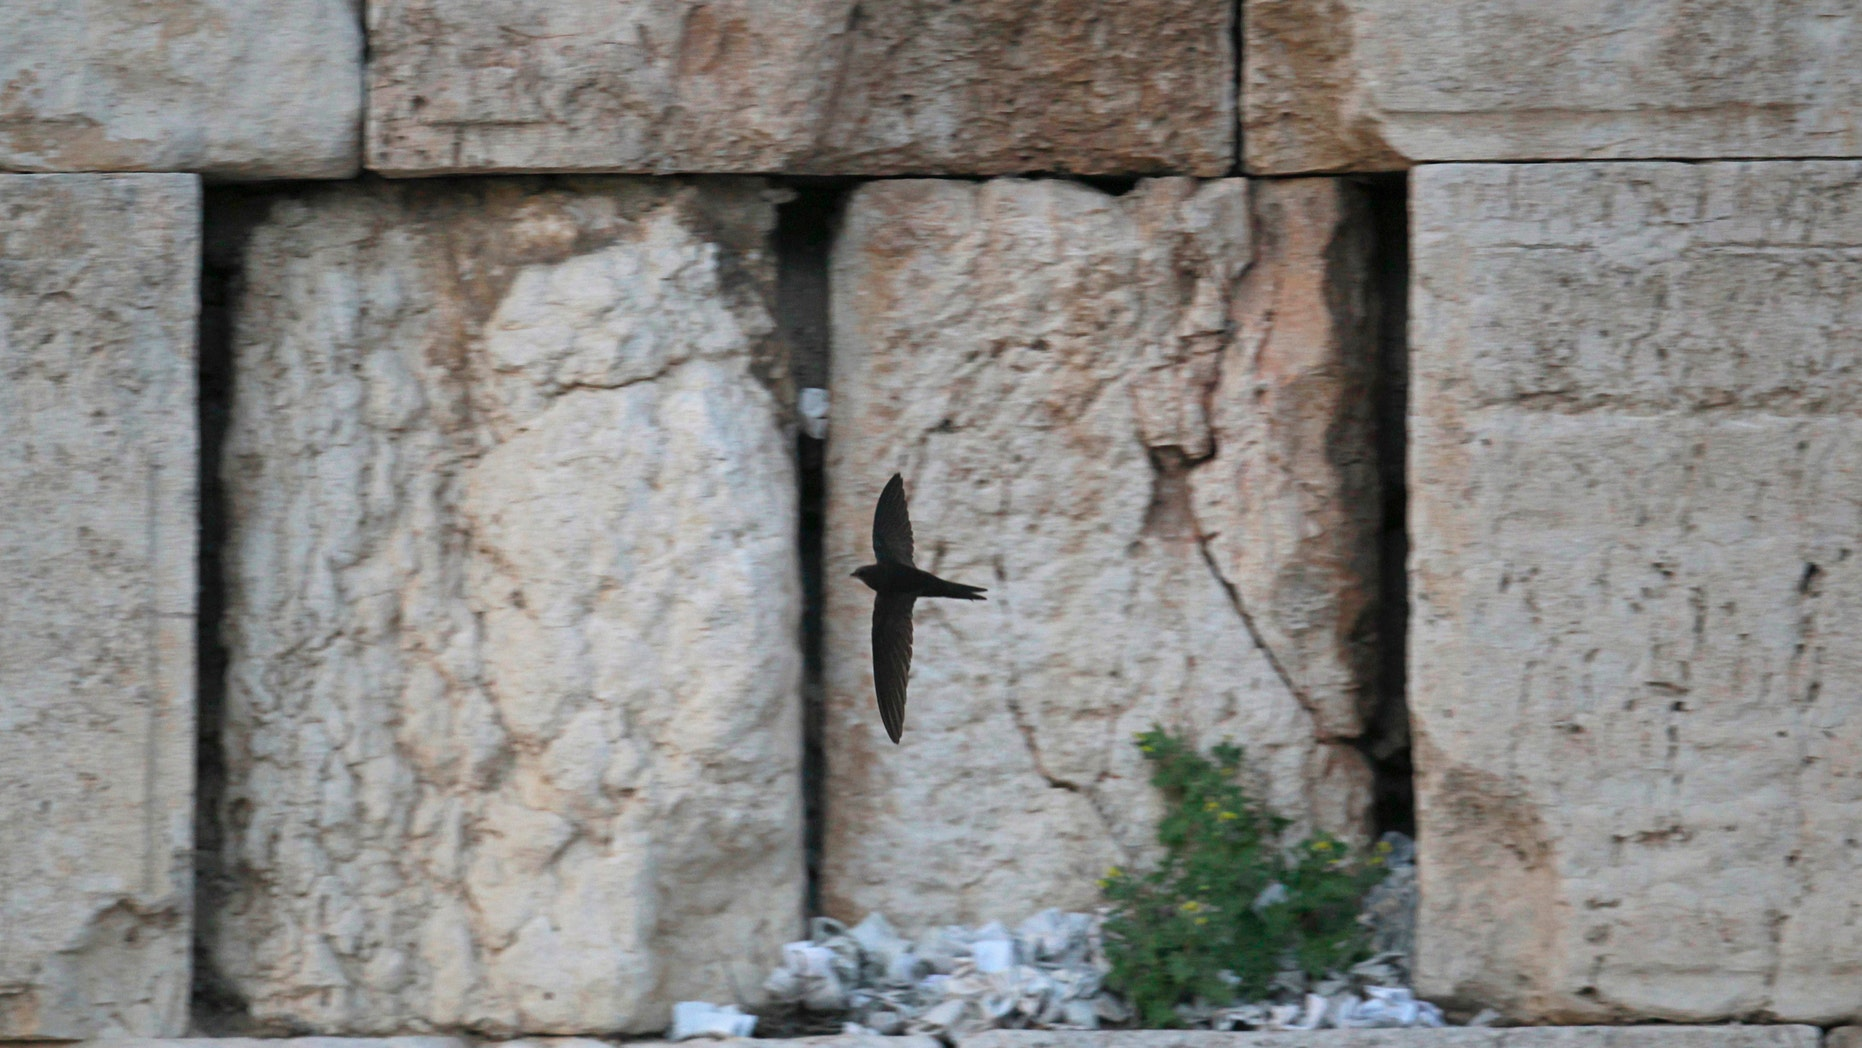 File photo - A swift flies past notes placed in the cracks of the Western Wall, Judaism's holiest prayer site, in Jerusalem's Old City March 11, 2012. (REUTERS/Ronen Zvulun)